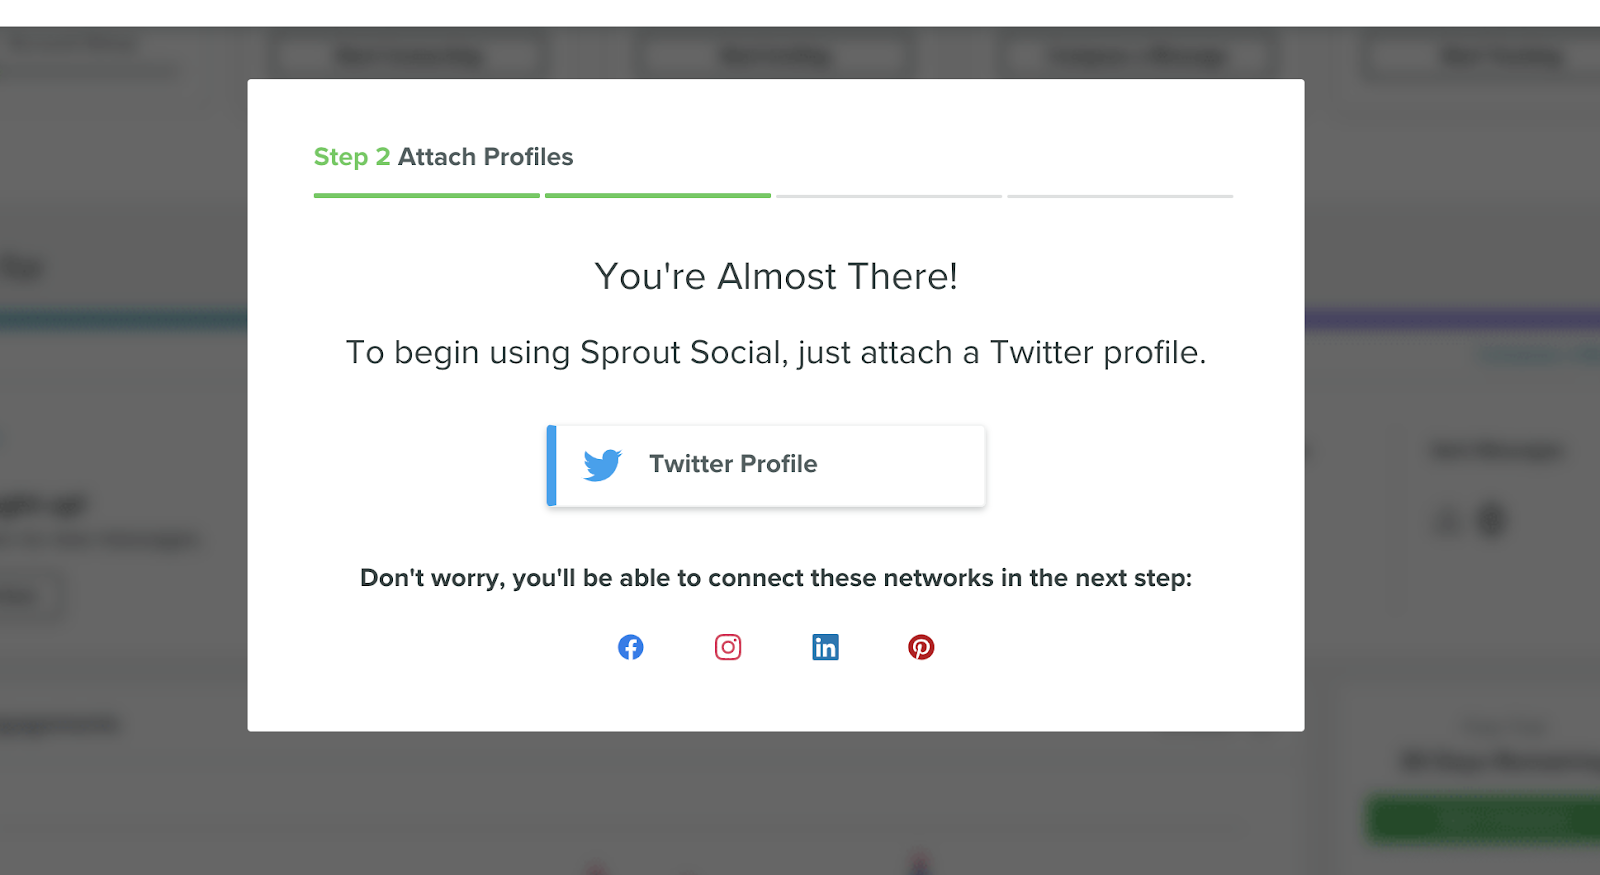 sprout social connecting twitter account user onboarding step required social account authorization